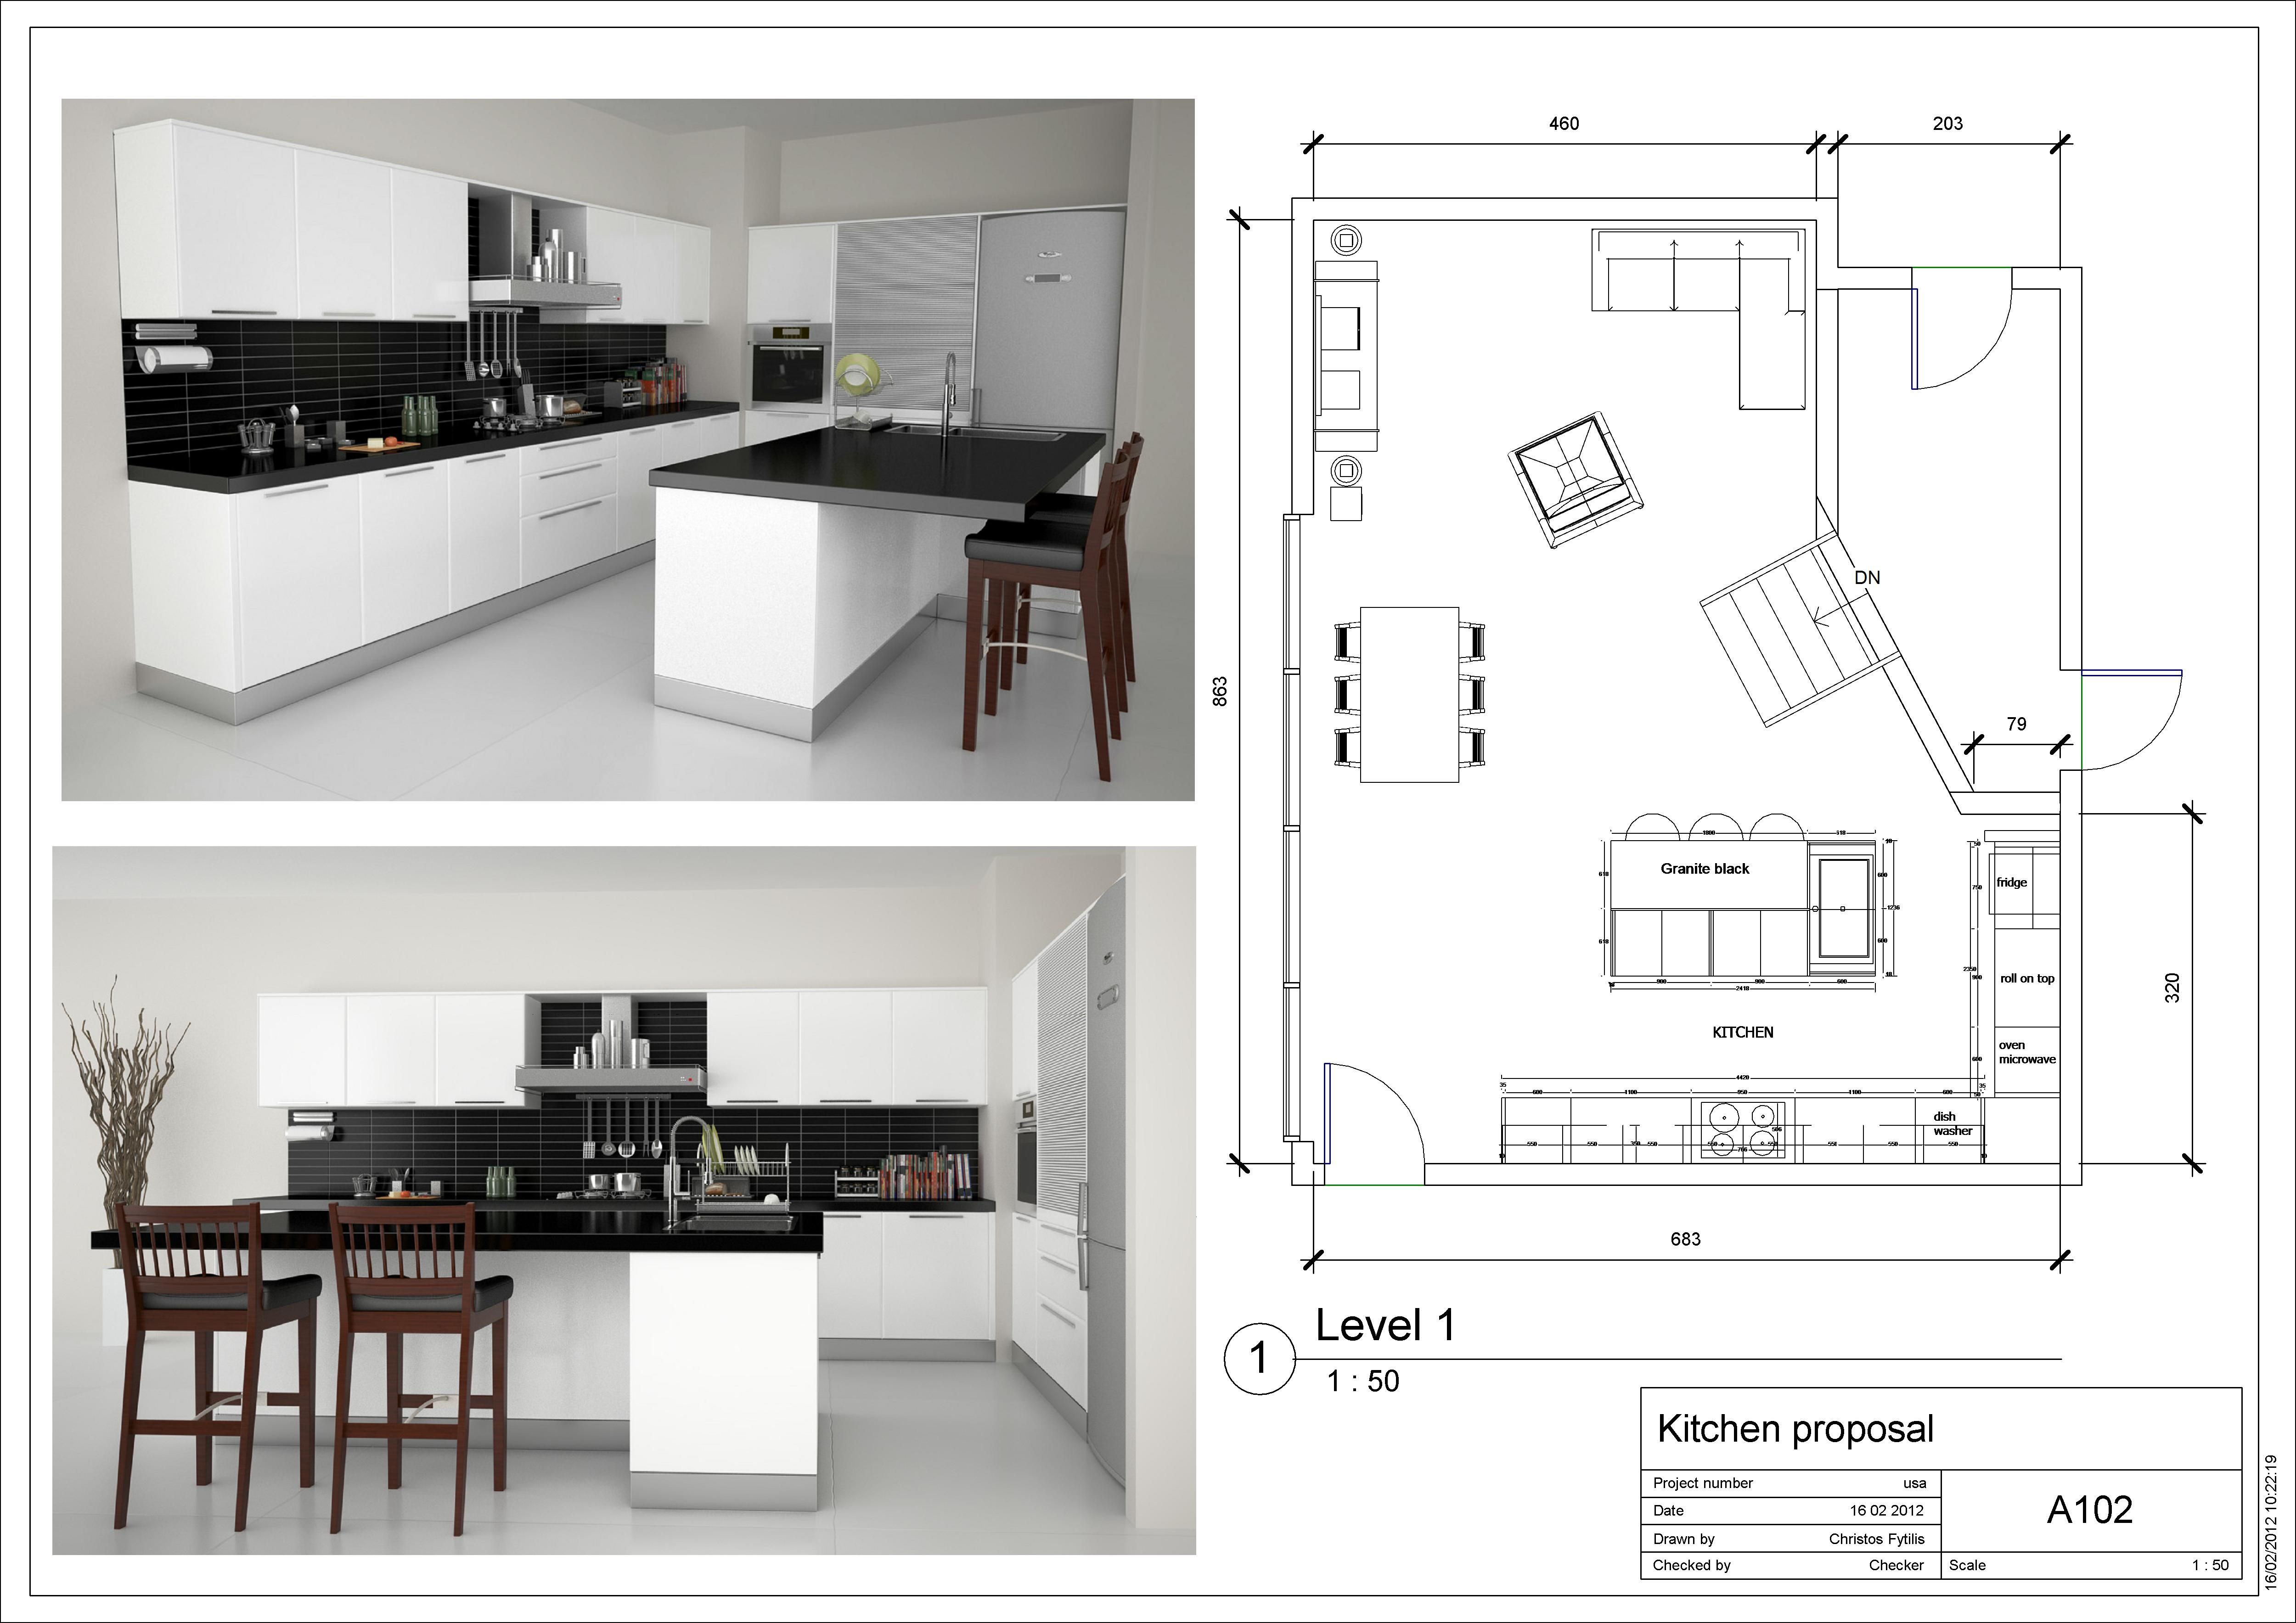 Kitchen floor plan layouts designs for home for Kitchen design layouts for small kitchens